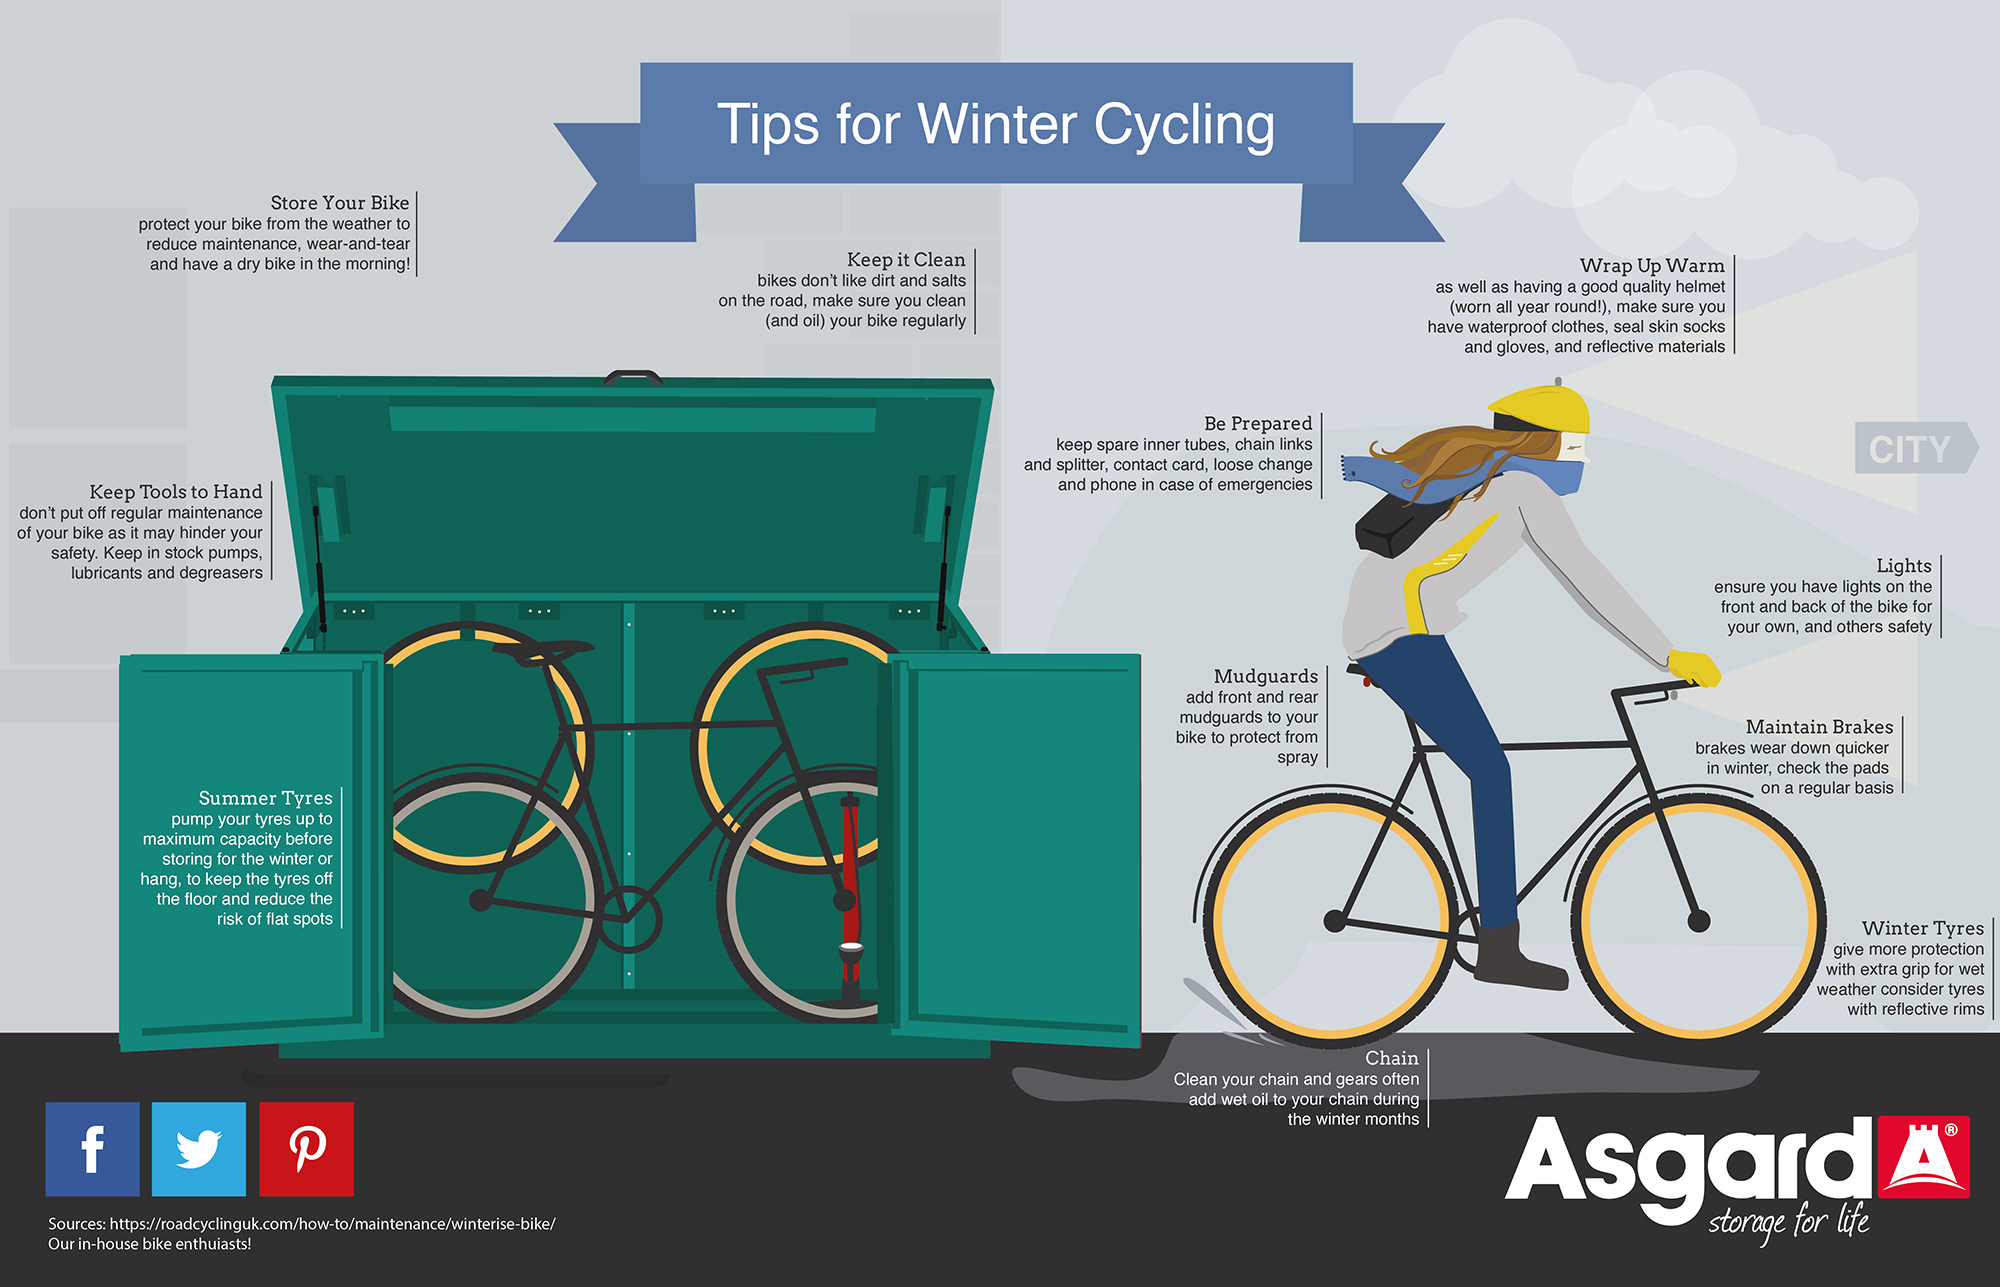 Cycling in the Winter